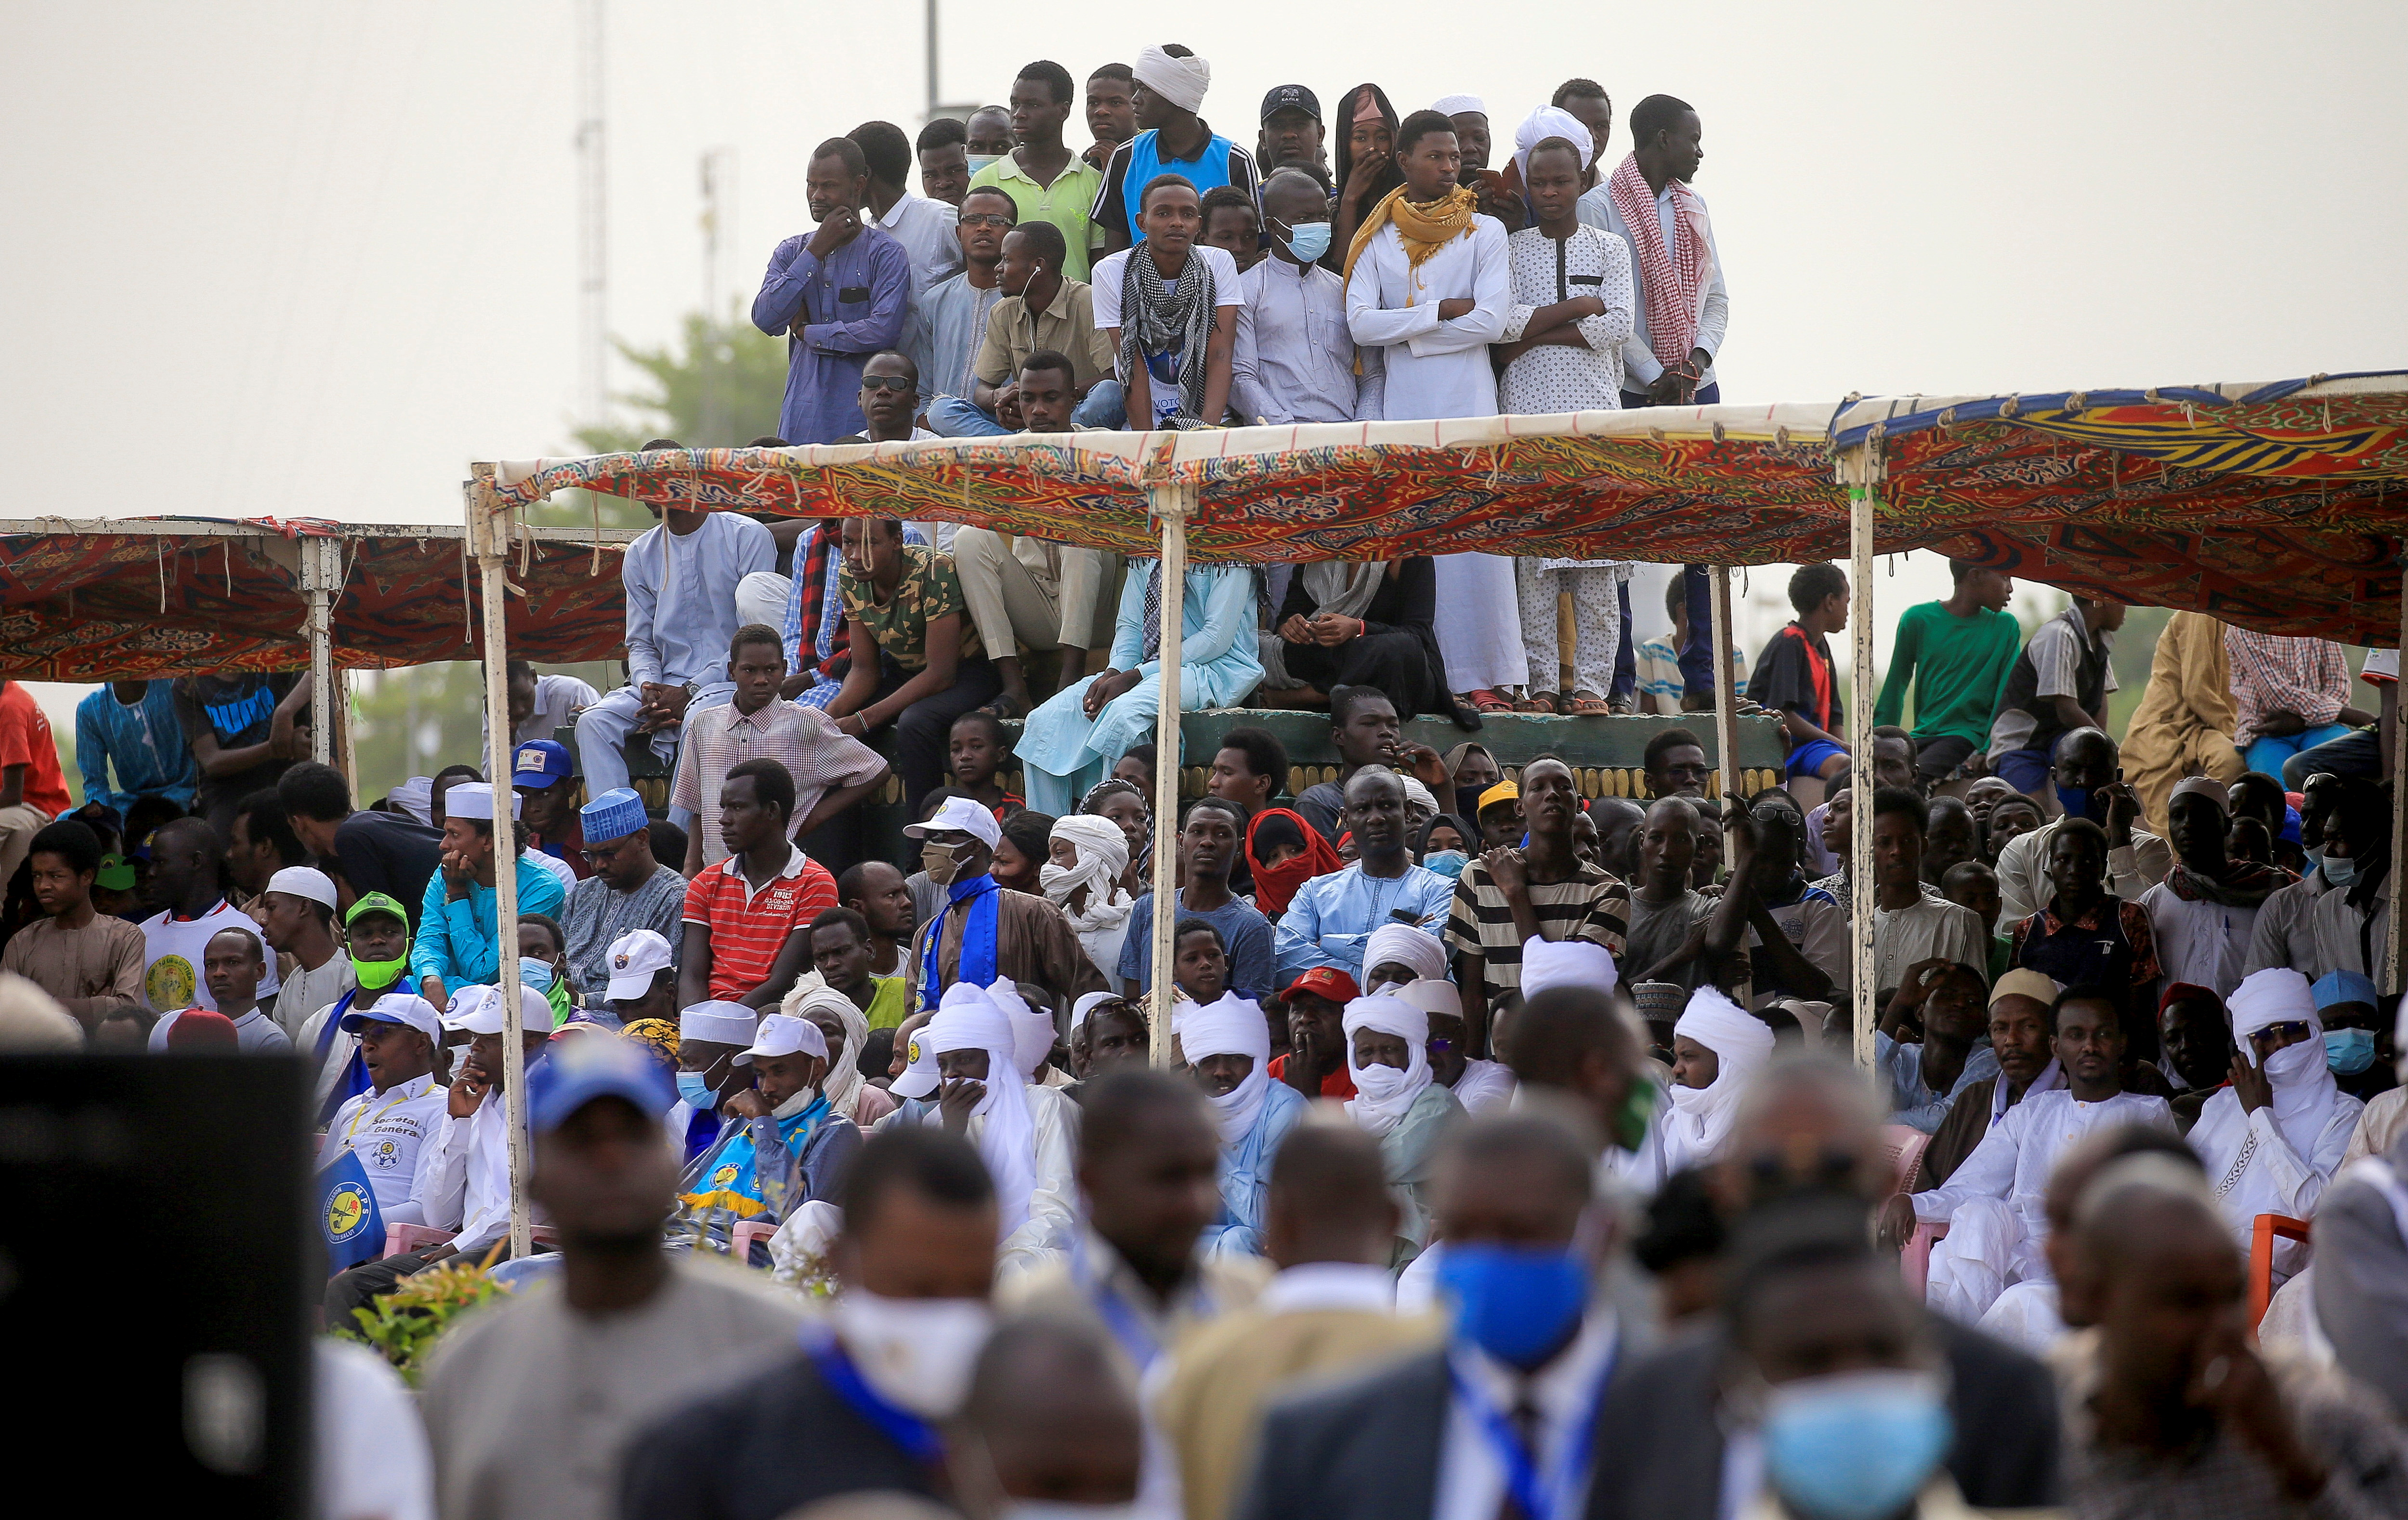 A crowd gathers to witness the state funeral for the late Chadian President Idriss Deby in N'Djamena, Chad April 23, 2021. Christophe Petit Tesson/Pool via REUTERS